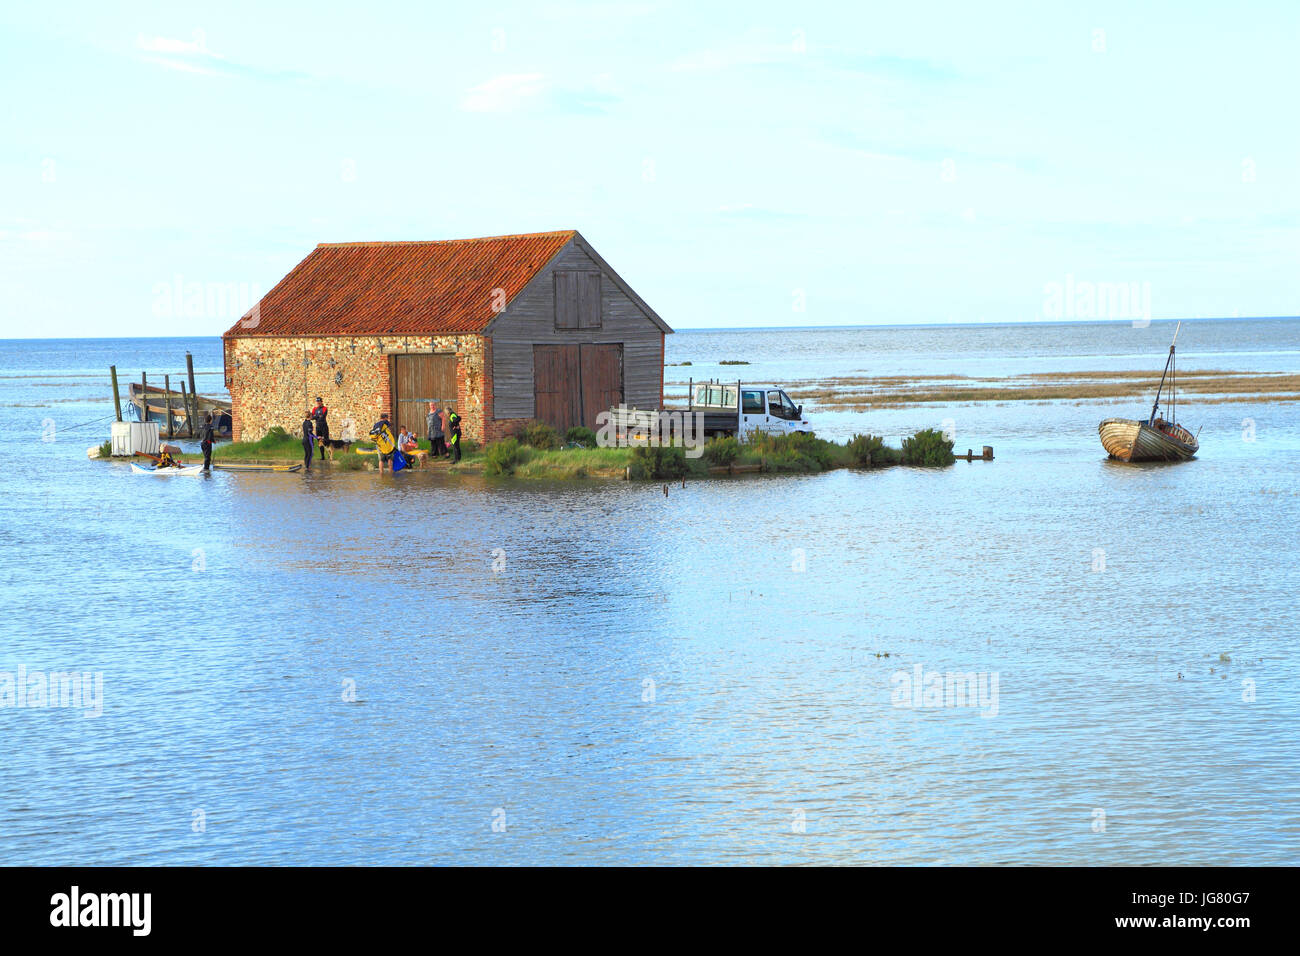 cut off by high tide, van, truck, people, North Sea surge, Coal Barn, Thornham, Norfolk, England, UK. tides, tidal, - Stock Image